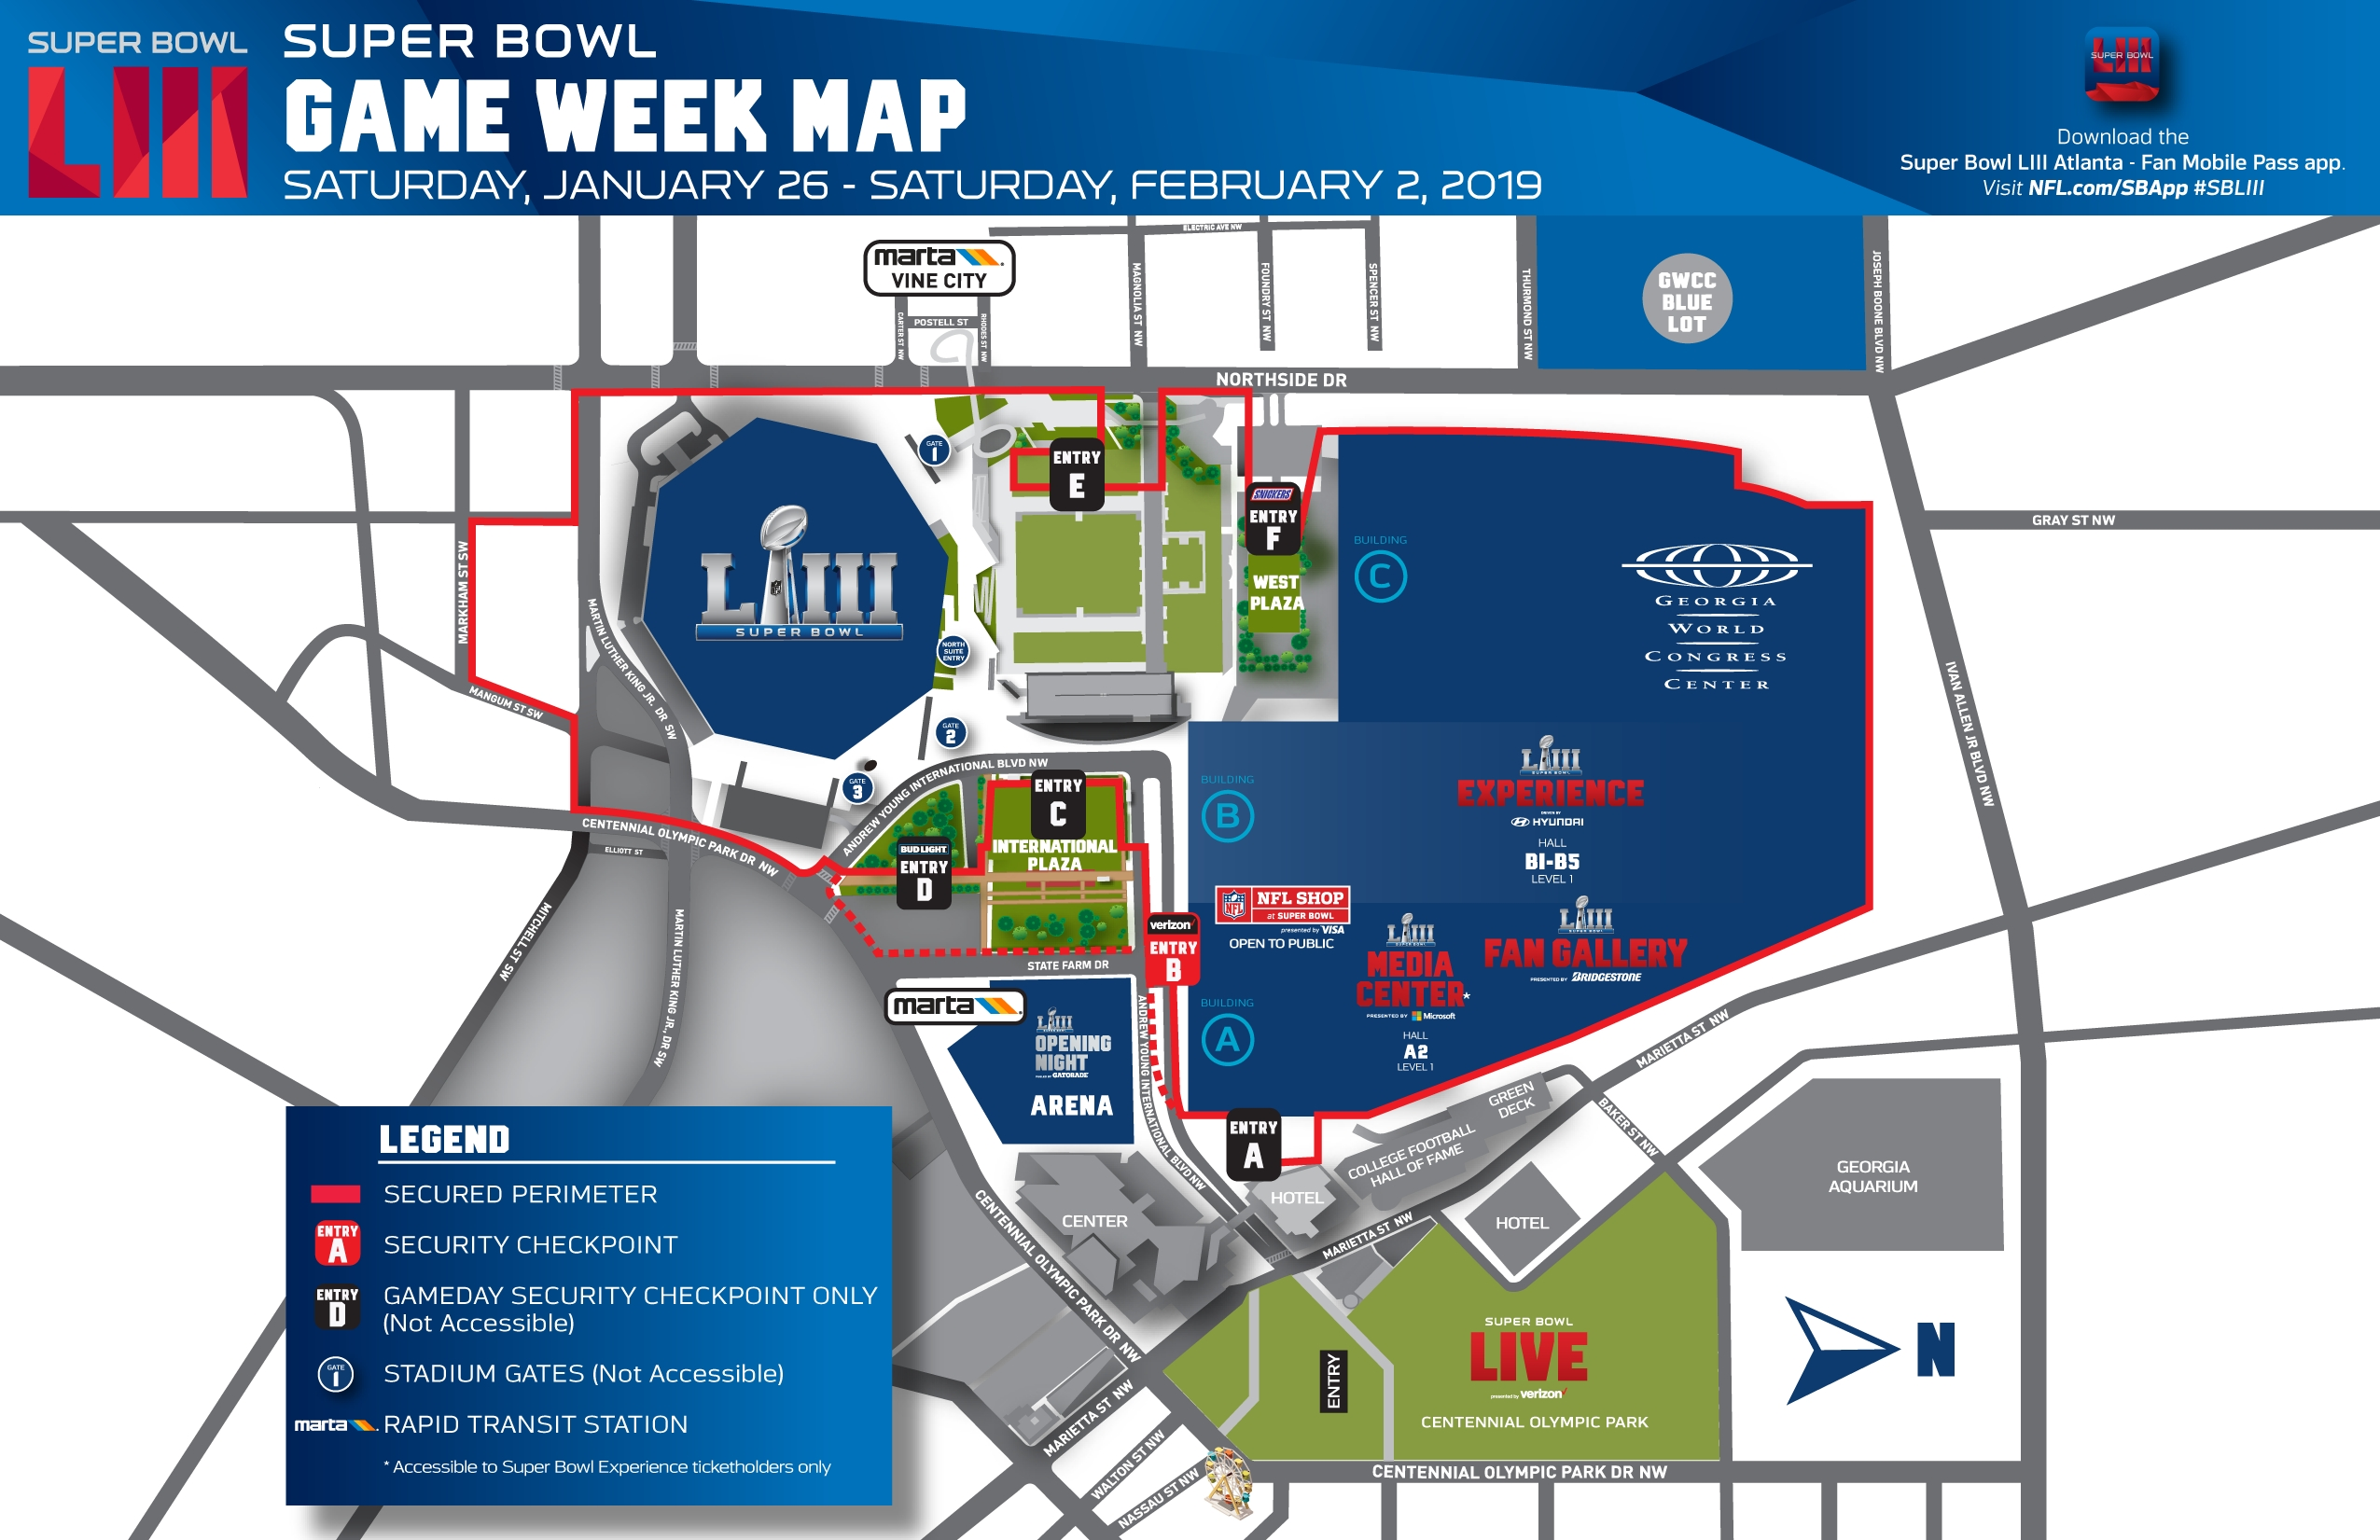 Super Bowl Experience | Nfl | Nfl pertaining to Super Bowl Ticket Map